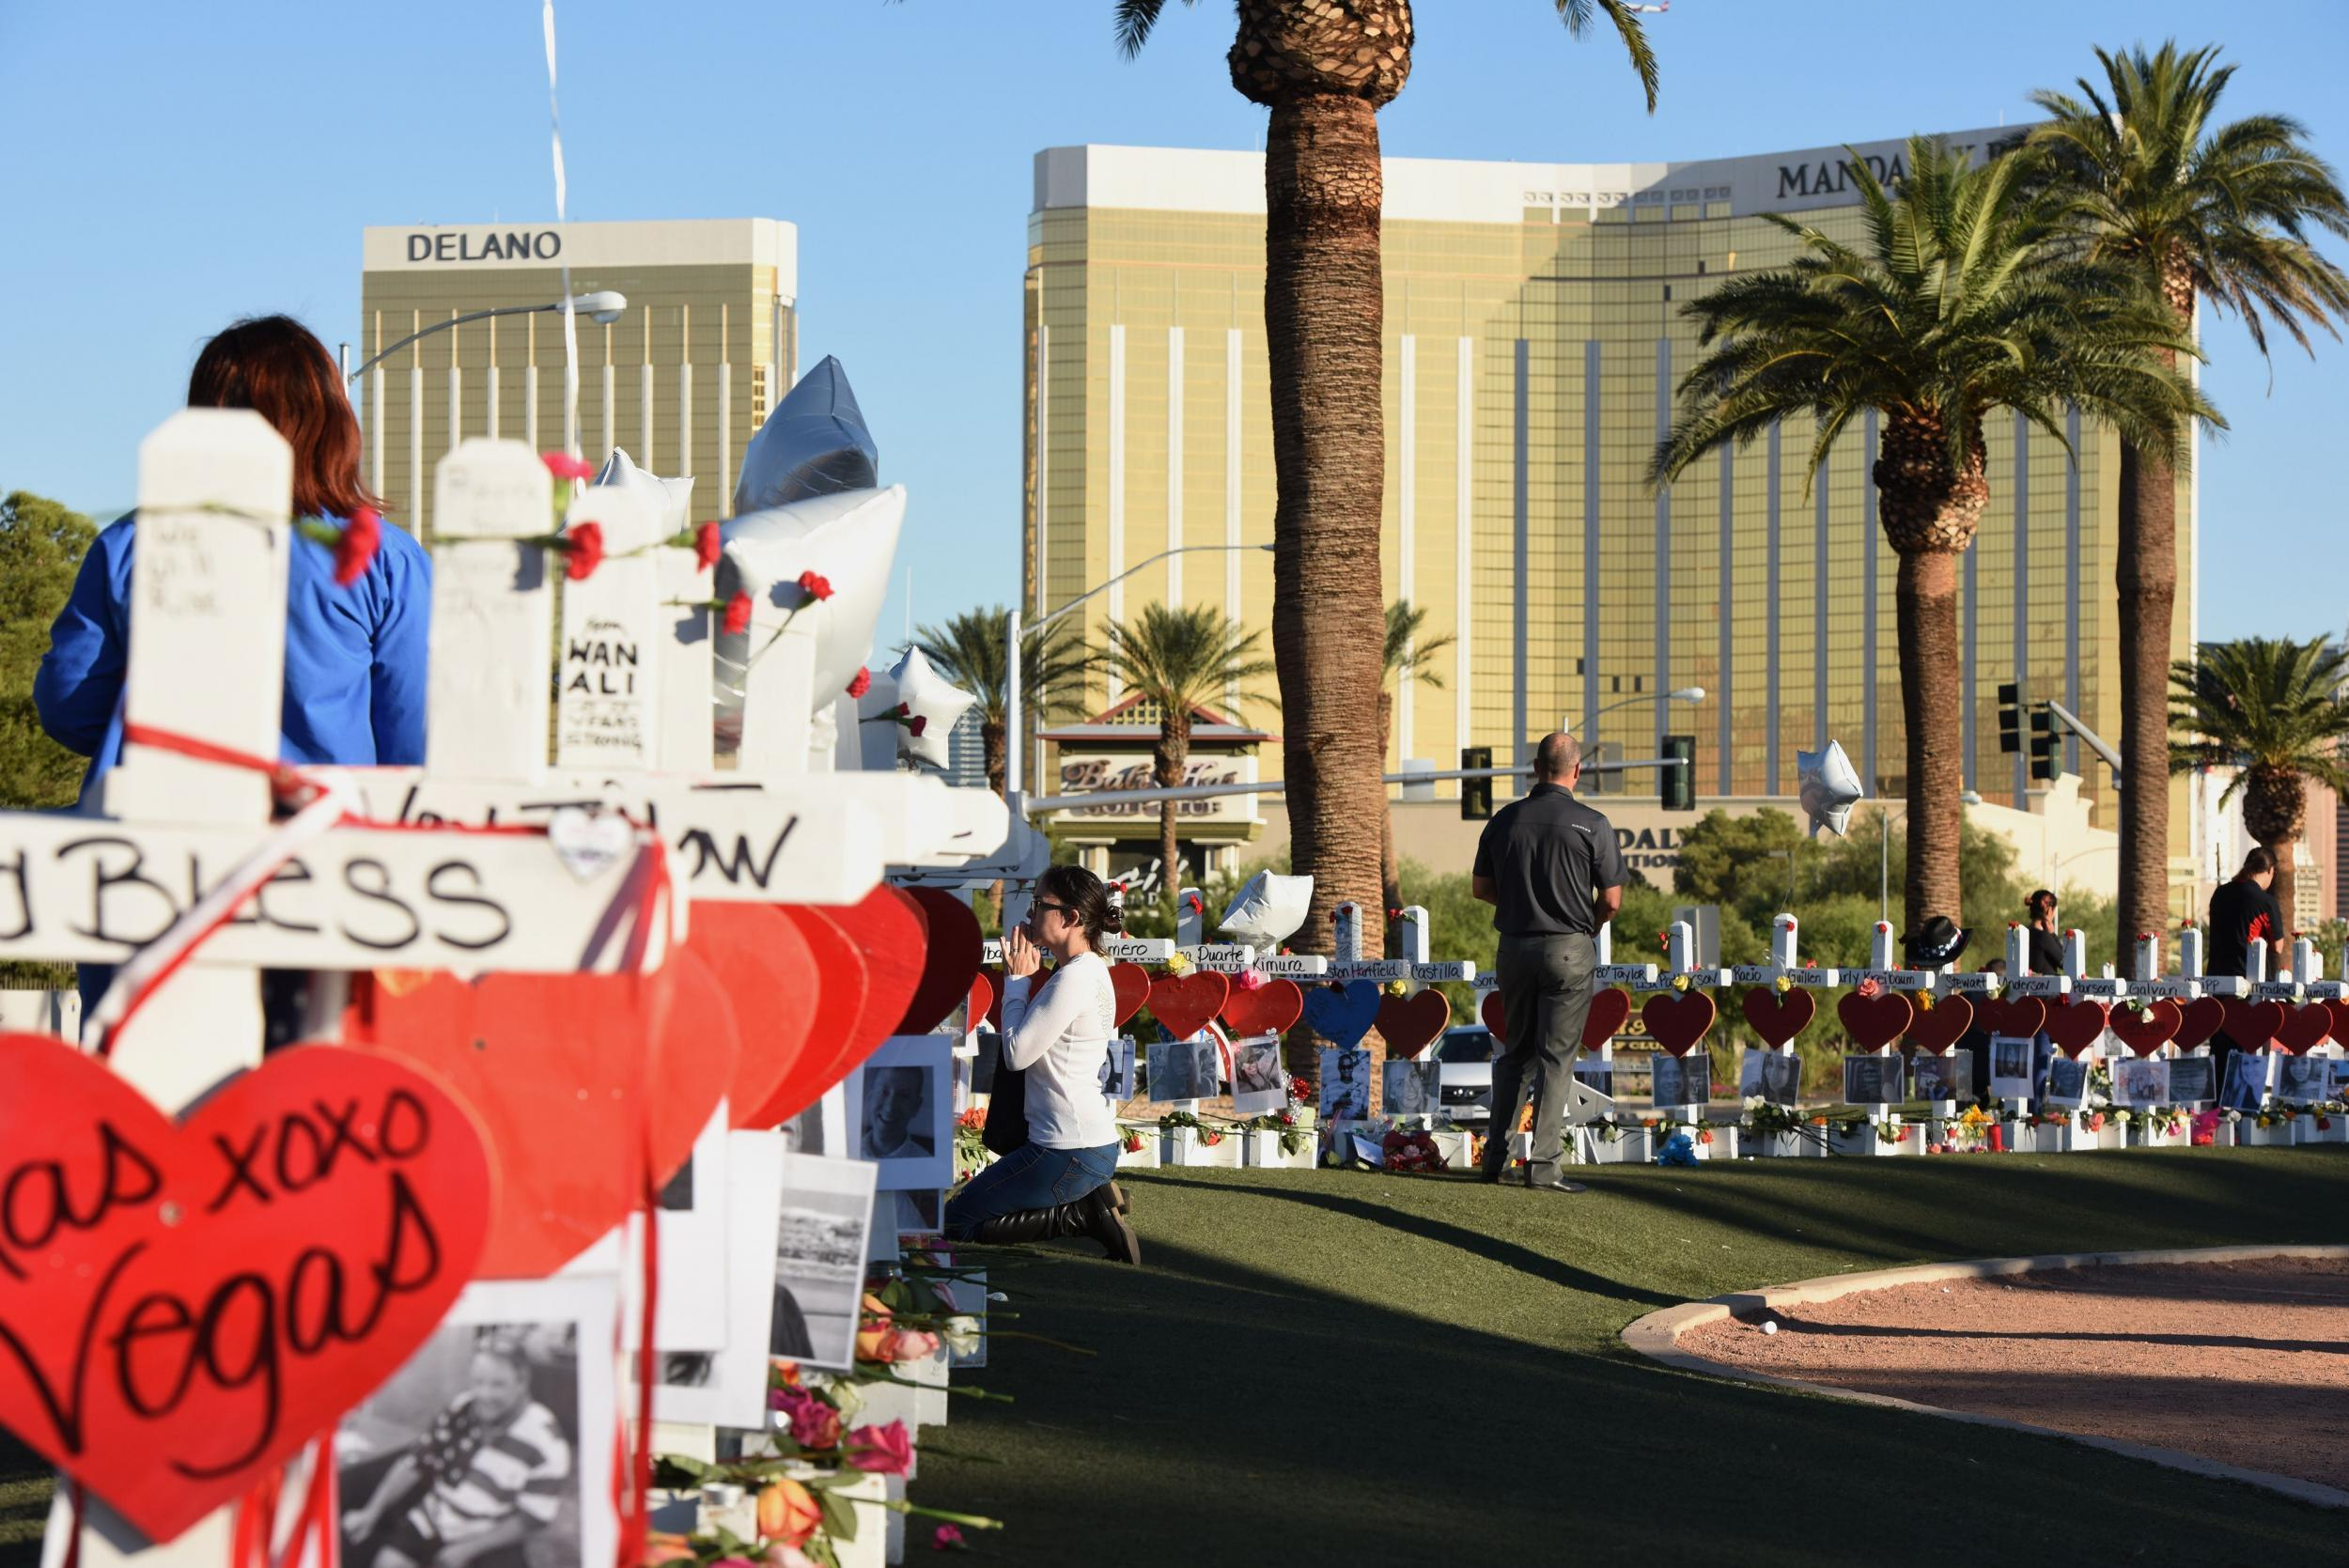 With snipers and helicopters, Las Vegas is gearing up for New Year's Eve thumbnail